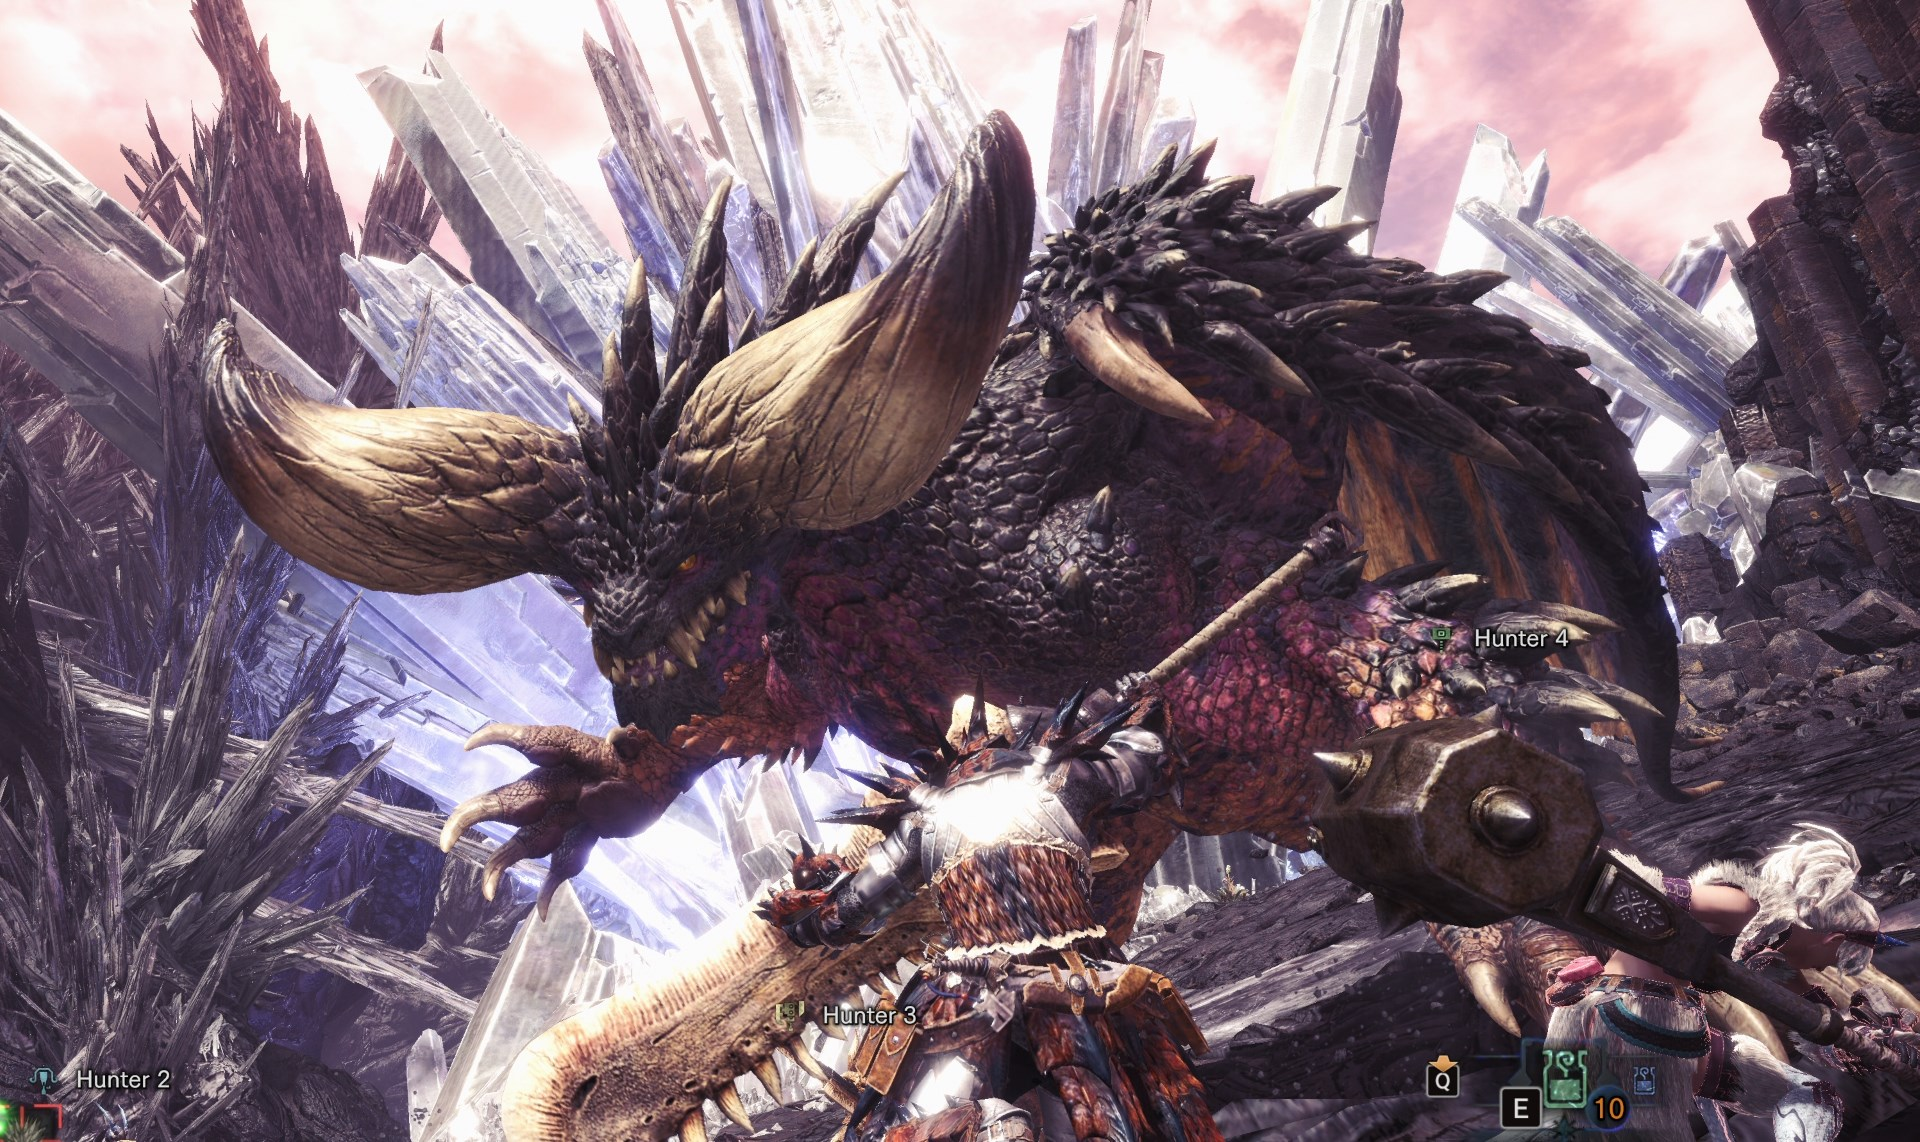 Monster Hunter: World beginner's guide to weapons, armor, hunting and more